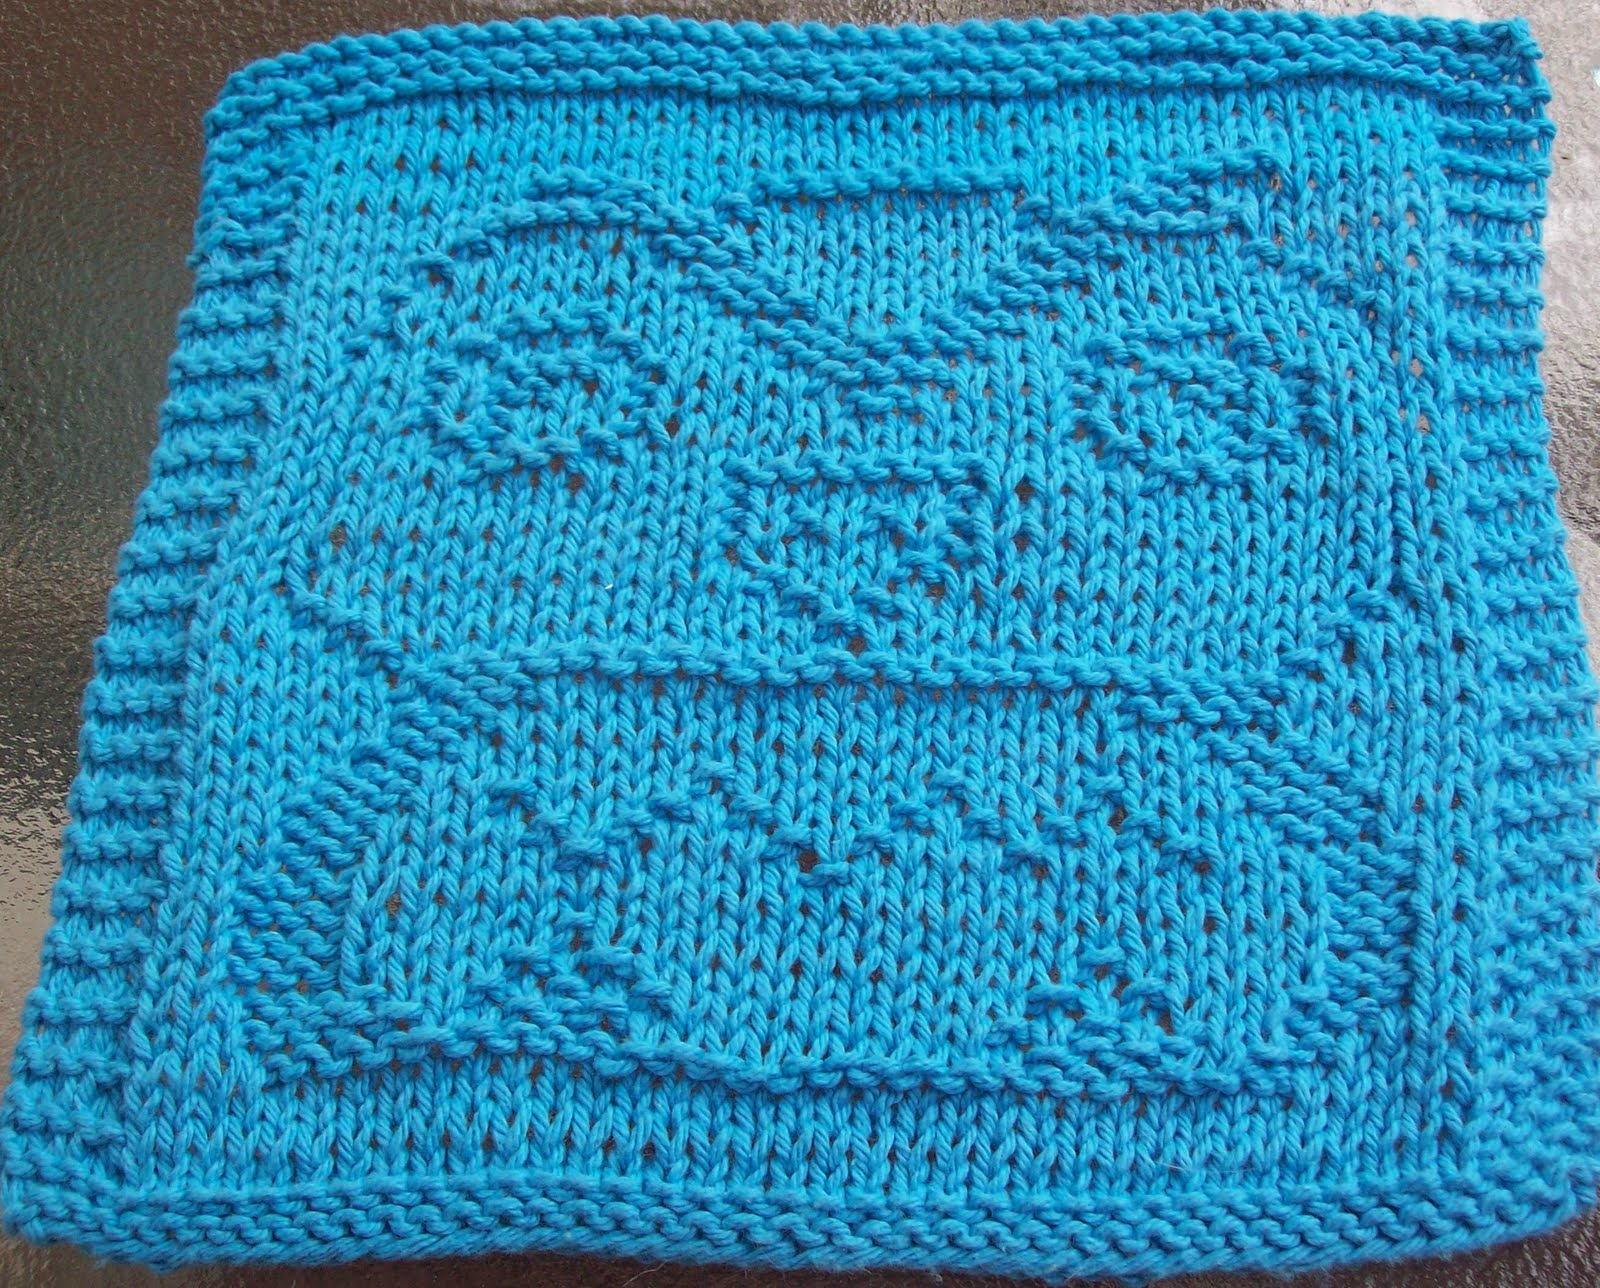 Knit Patterns For Dishcloths Free : DISHCLOTH PATTERNS KNITTED   Free Patterns